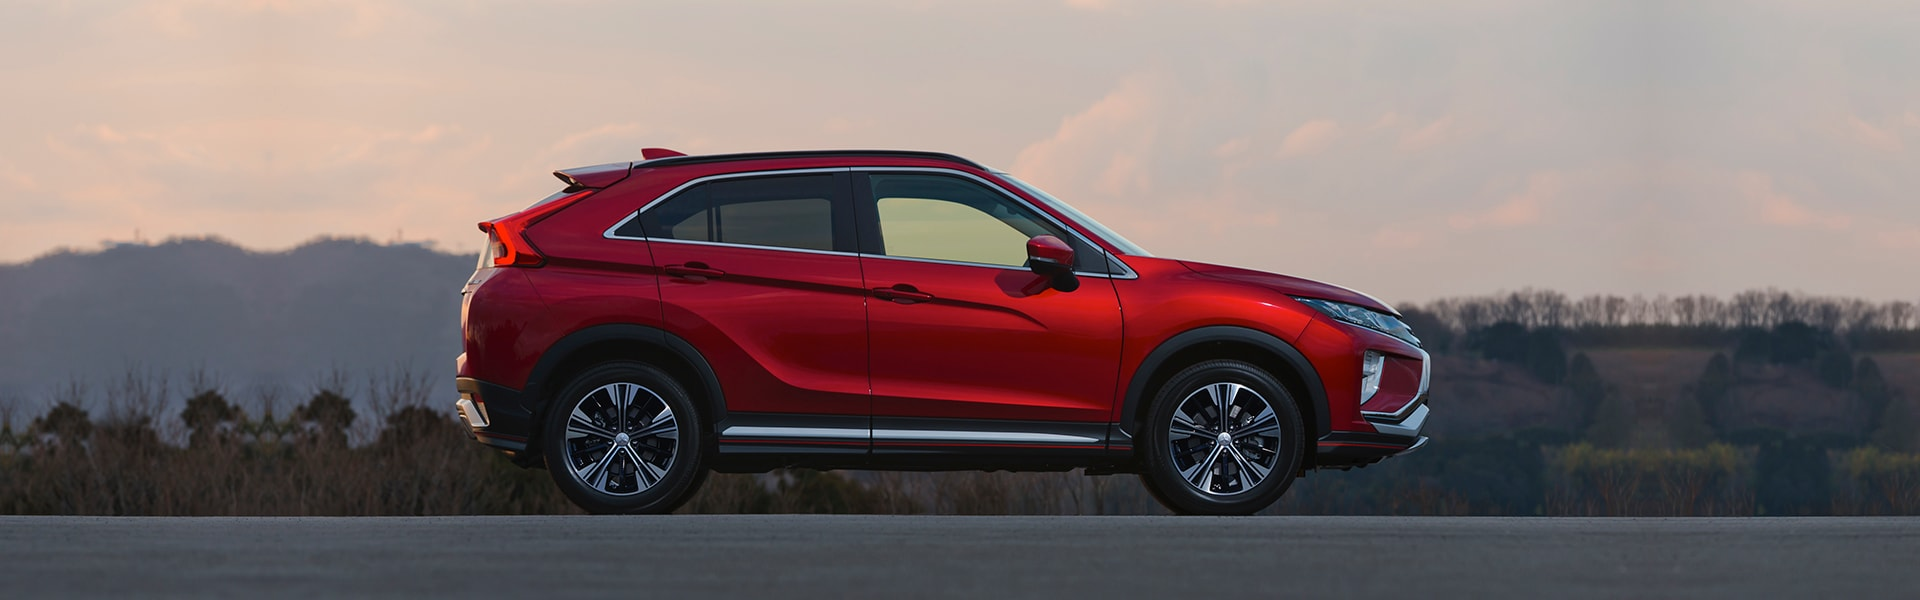 Sideview 2018 Mitsubishi Crossover SUV Exterior